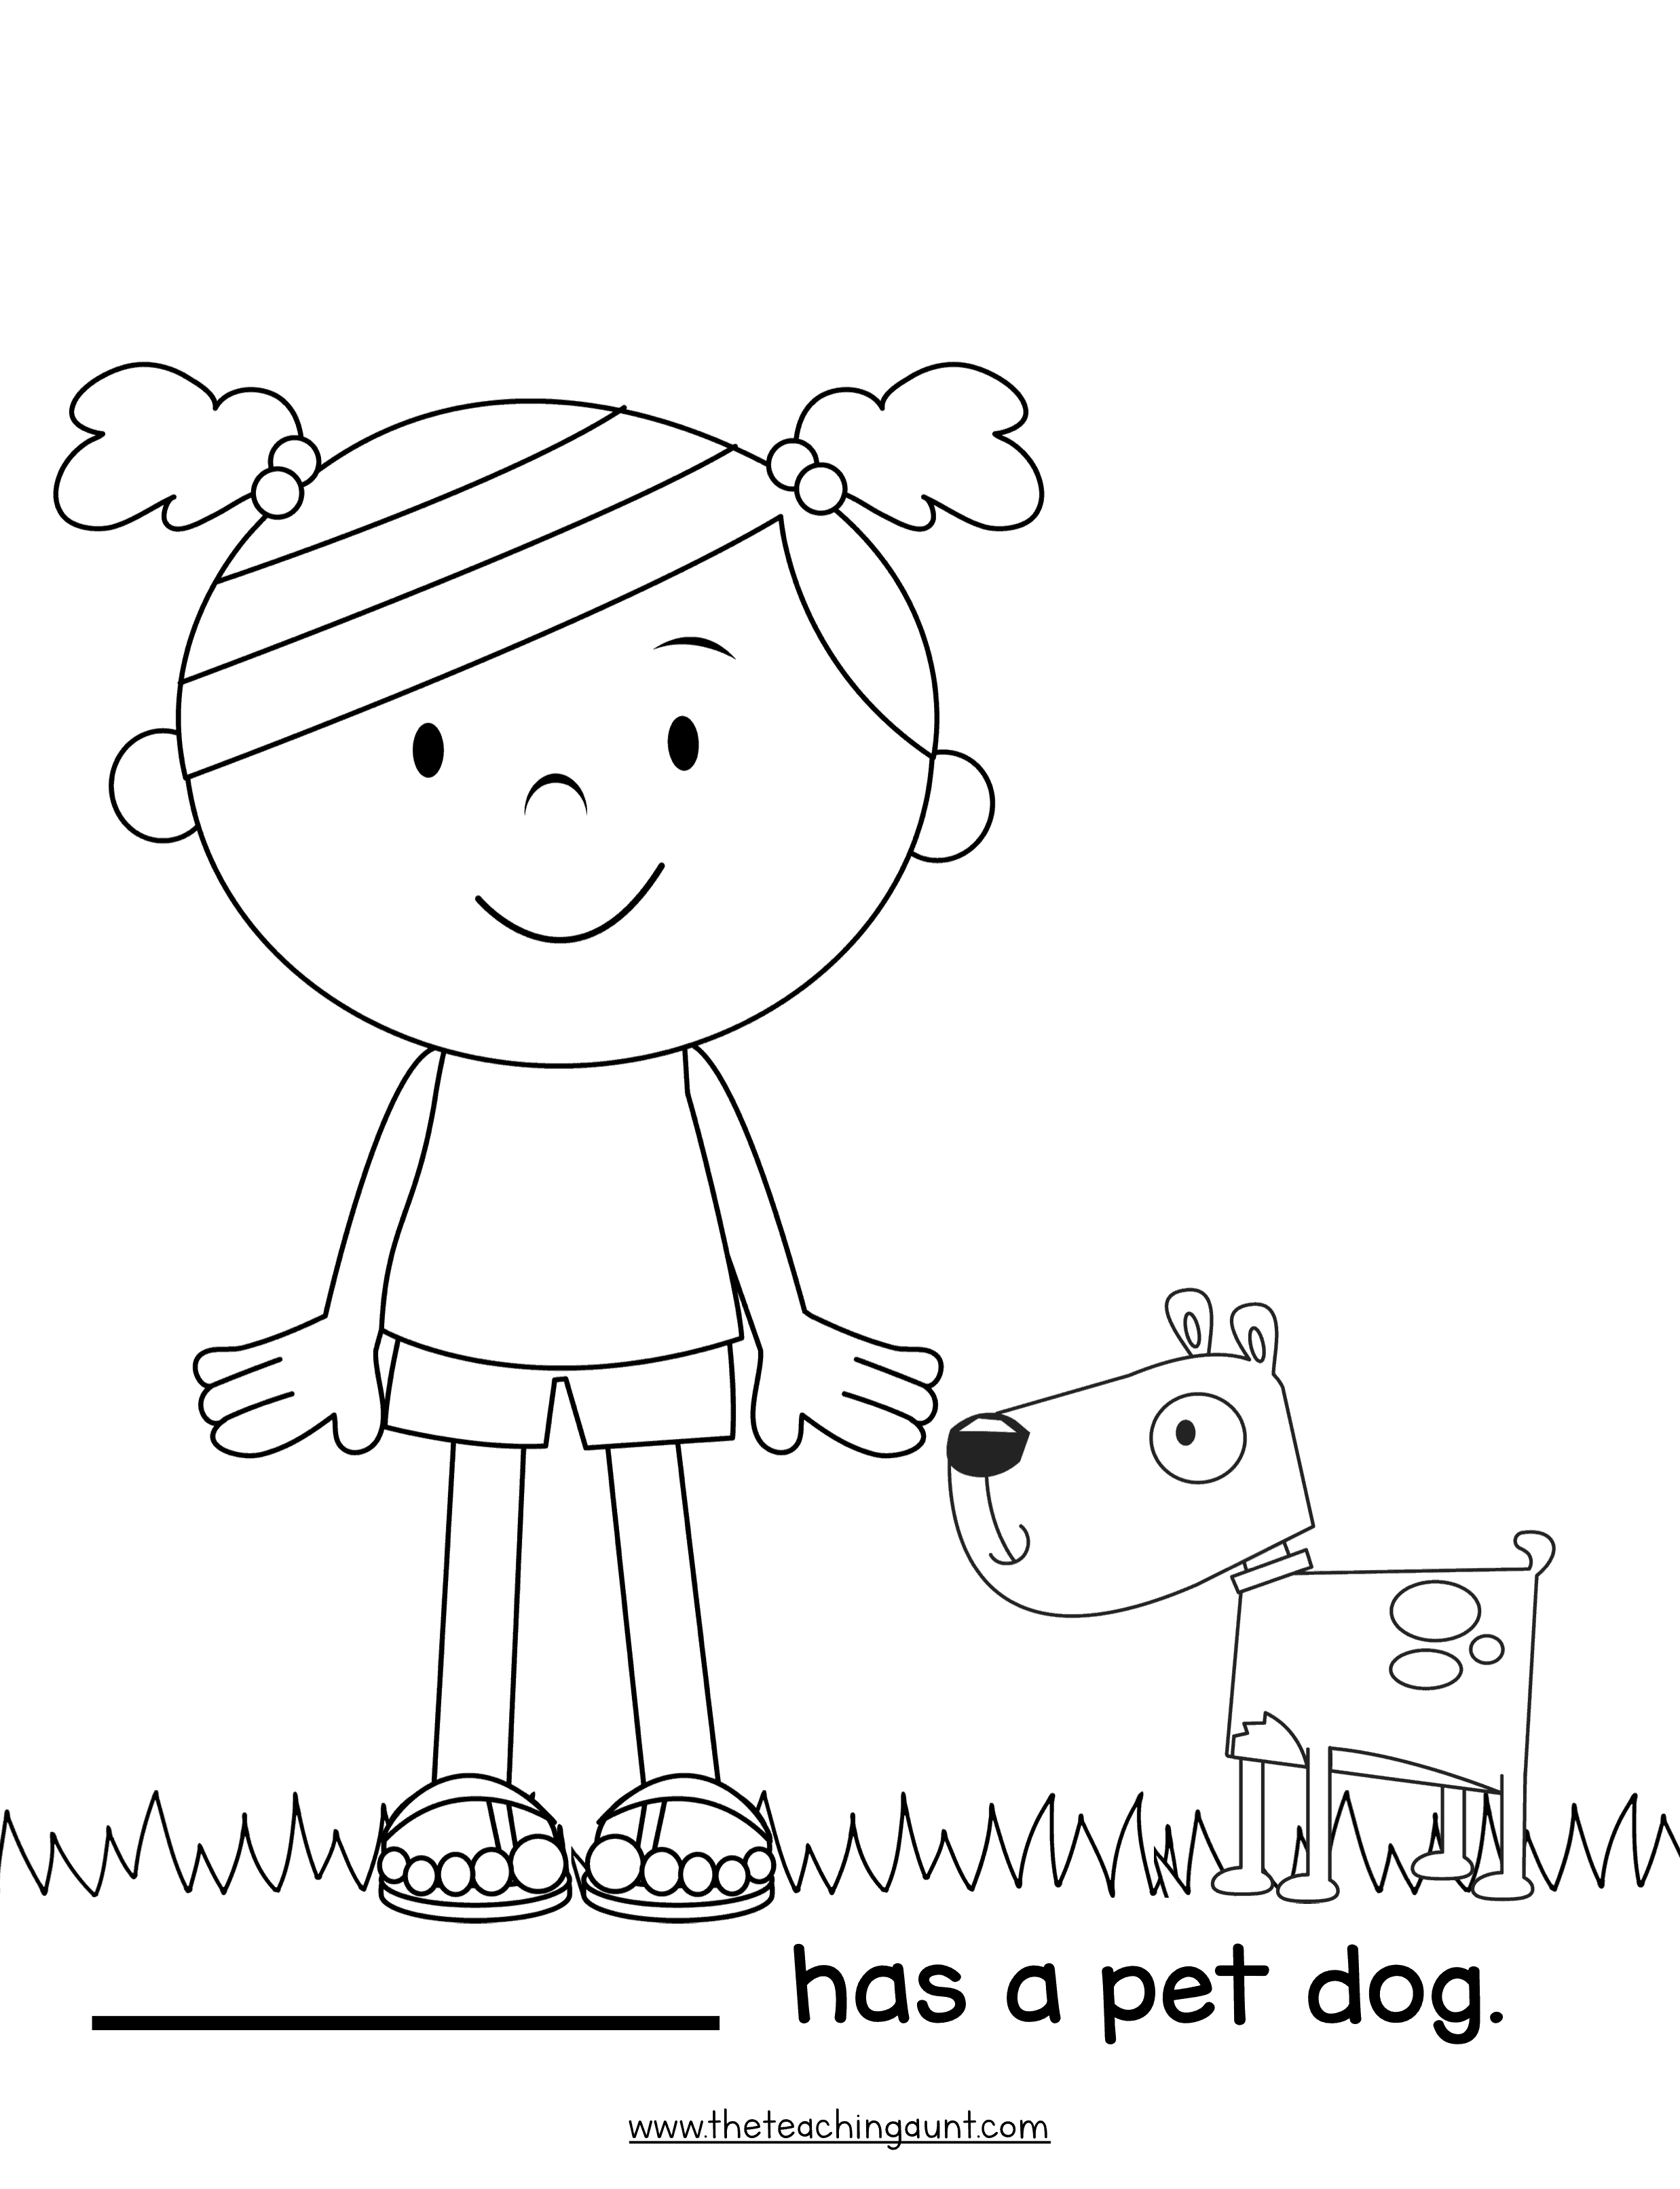 Benefits of coloring activity for toddlers and preschoolers the